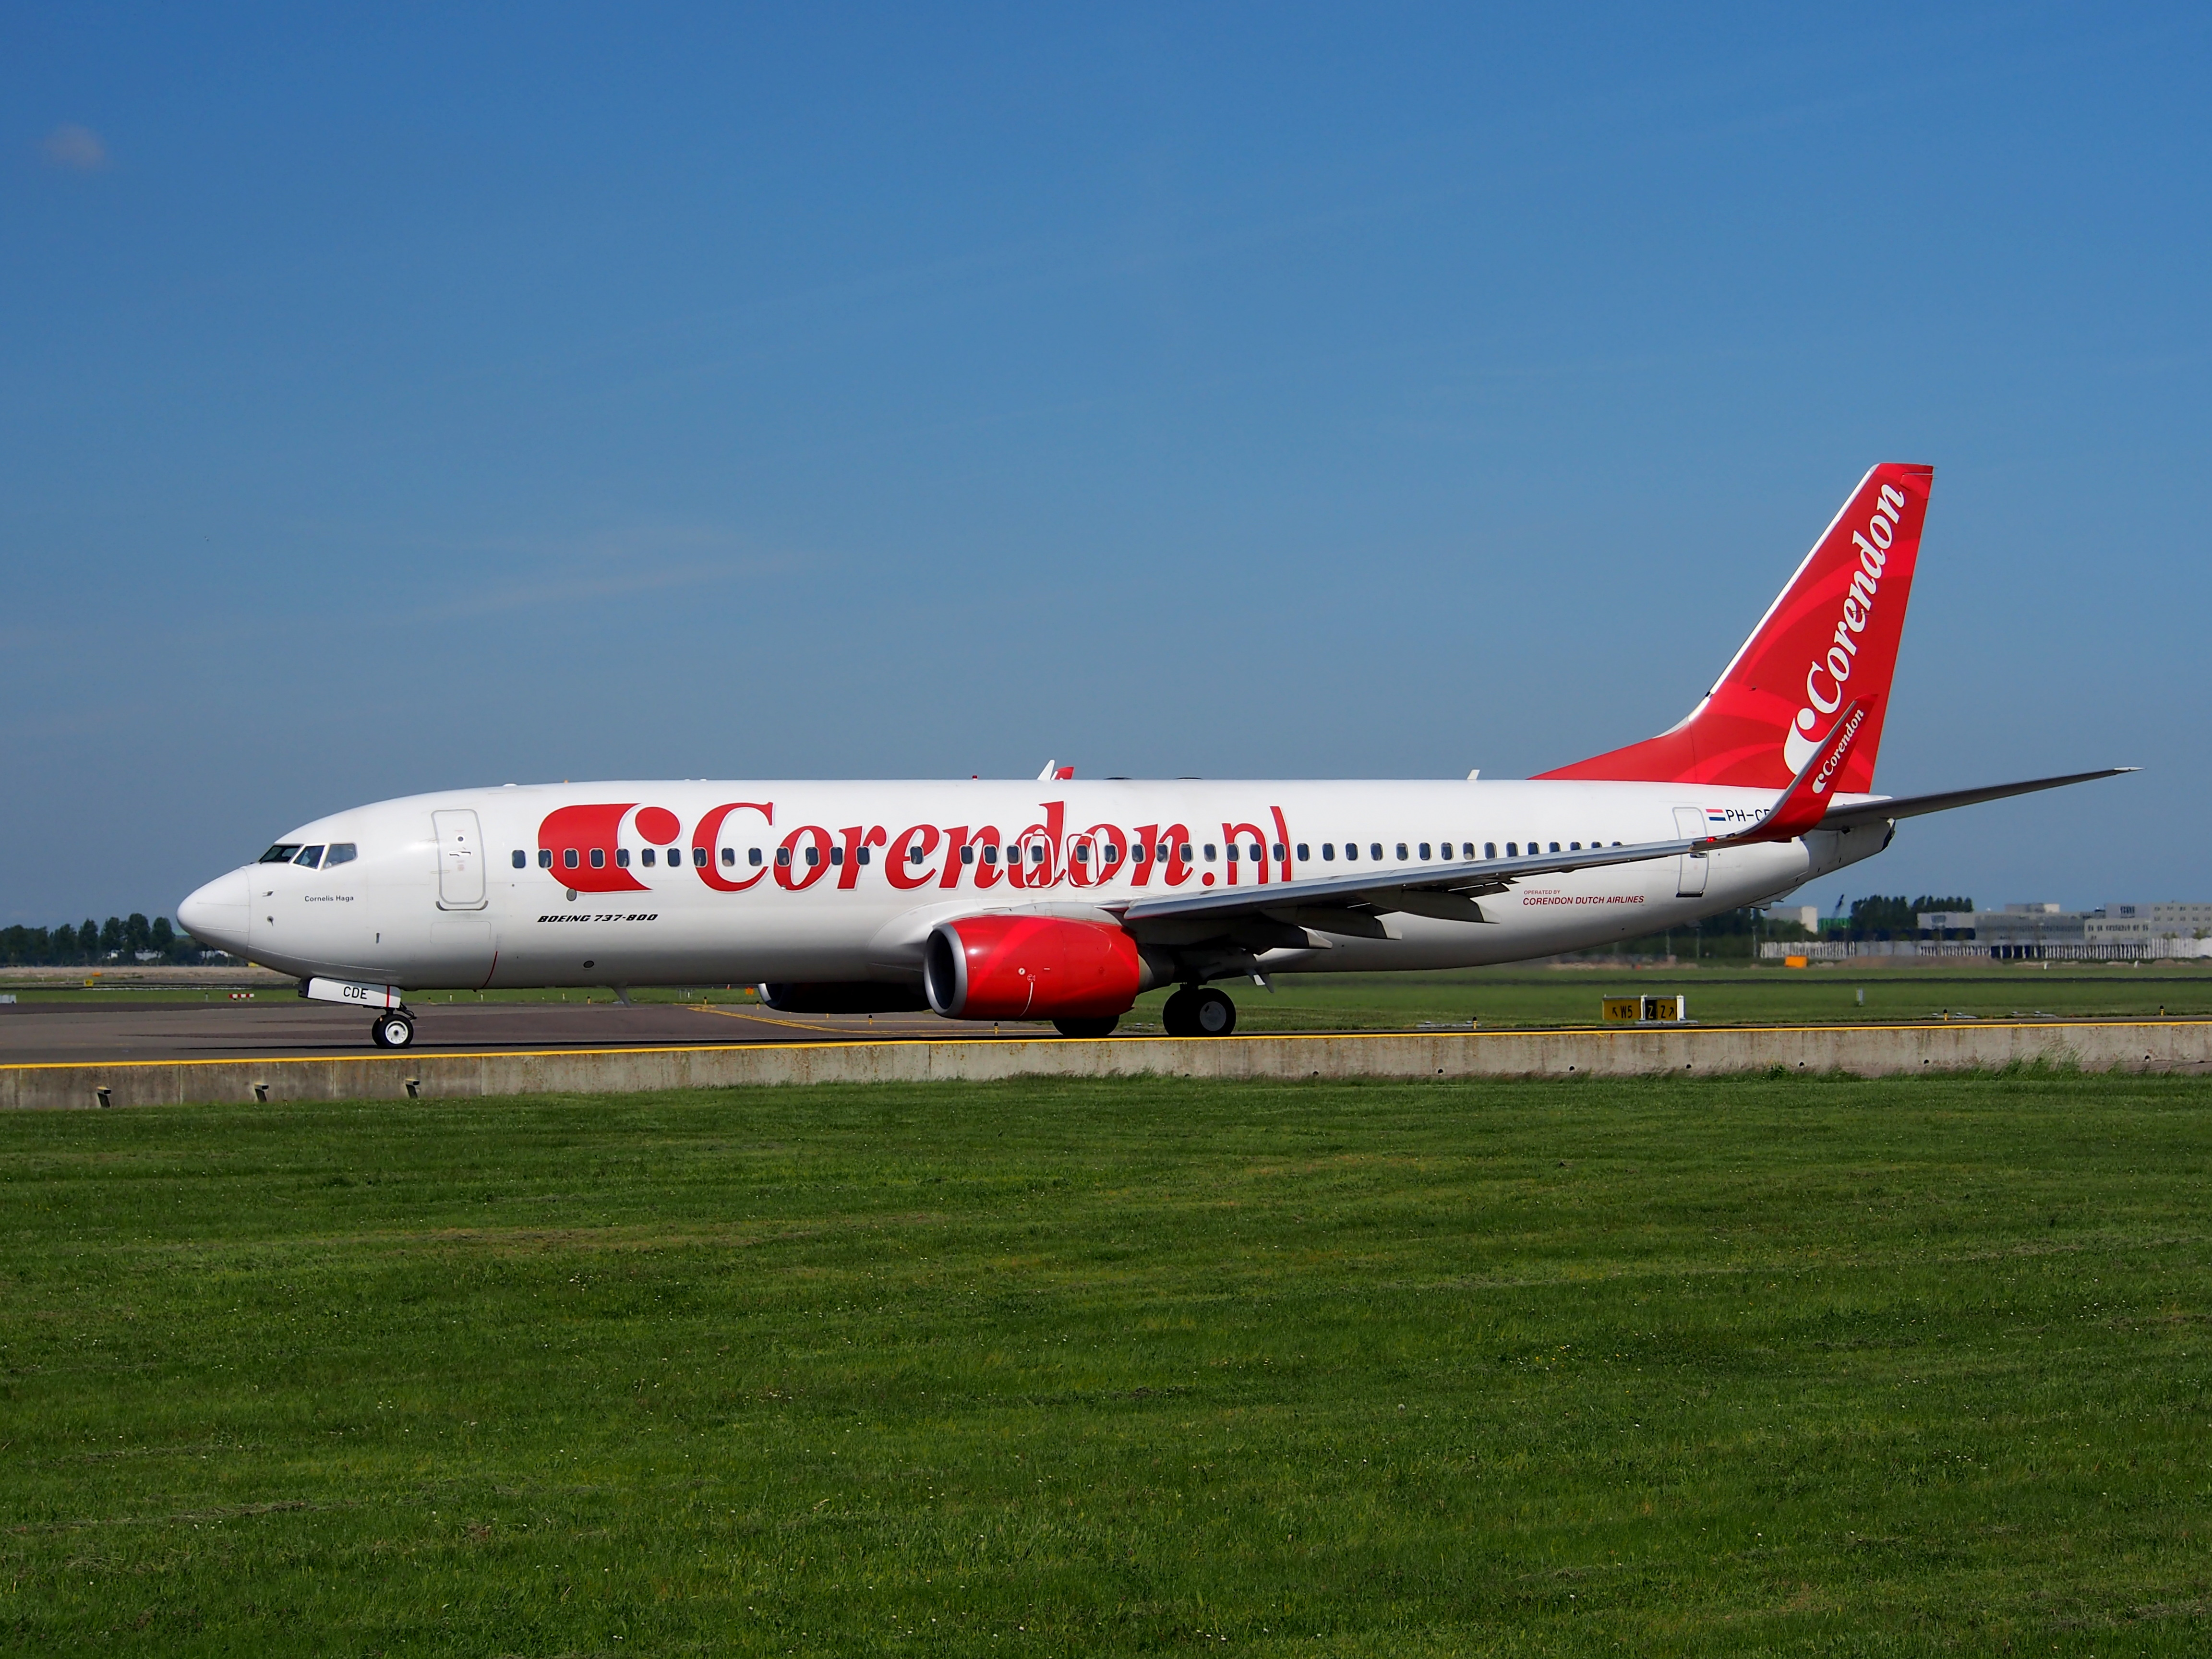 File:PH-CDE Corendon Dutch Airlines Boeing 737-8KN(WL) at Schiphol ...